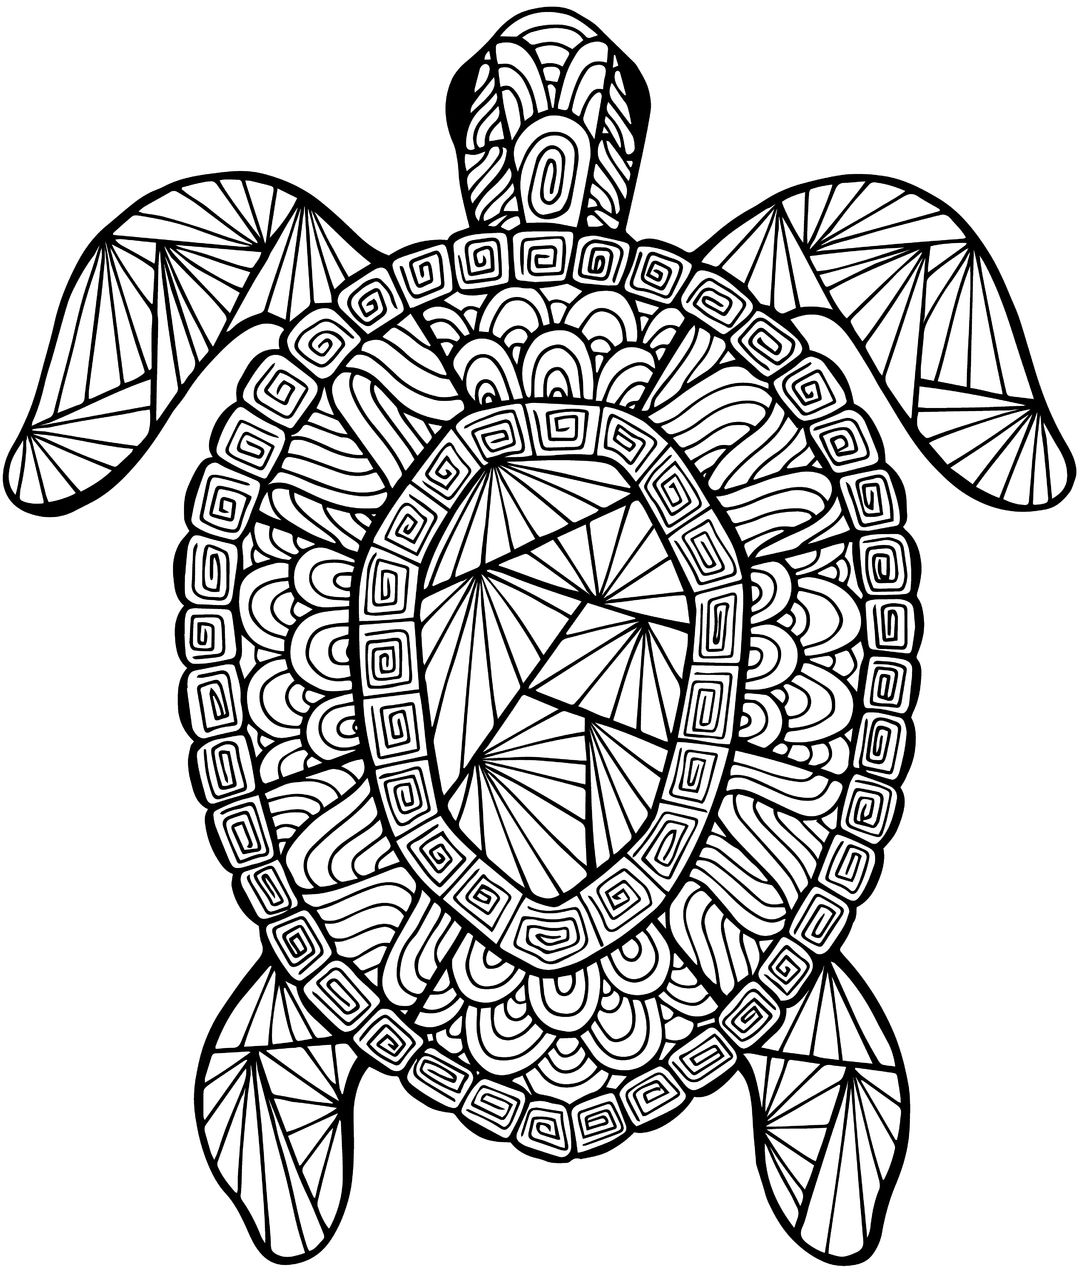 Detailed Sea Turtle Advanced Coloring Page Turtle Coloring Pages Summer Coloring Pages Mandala Coloring Pages